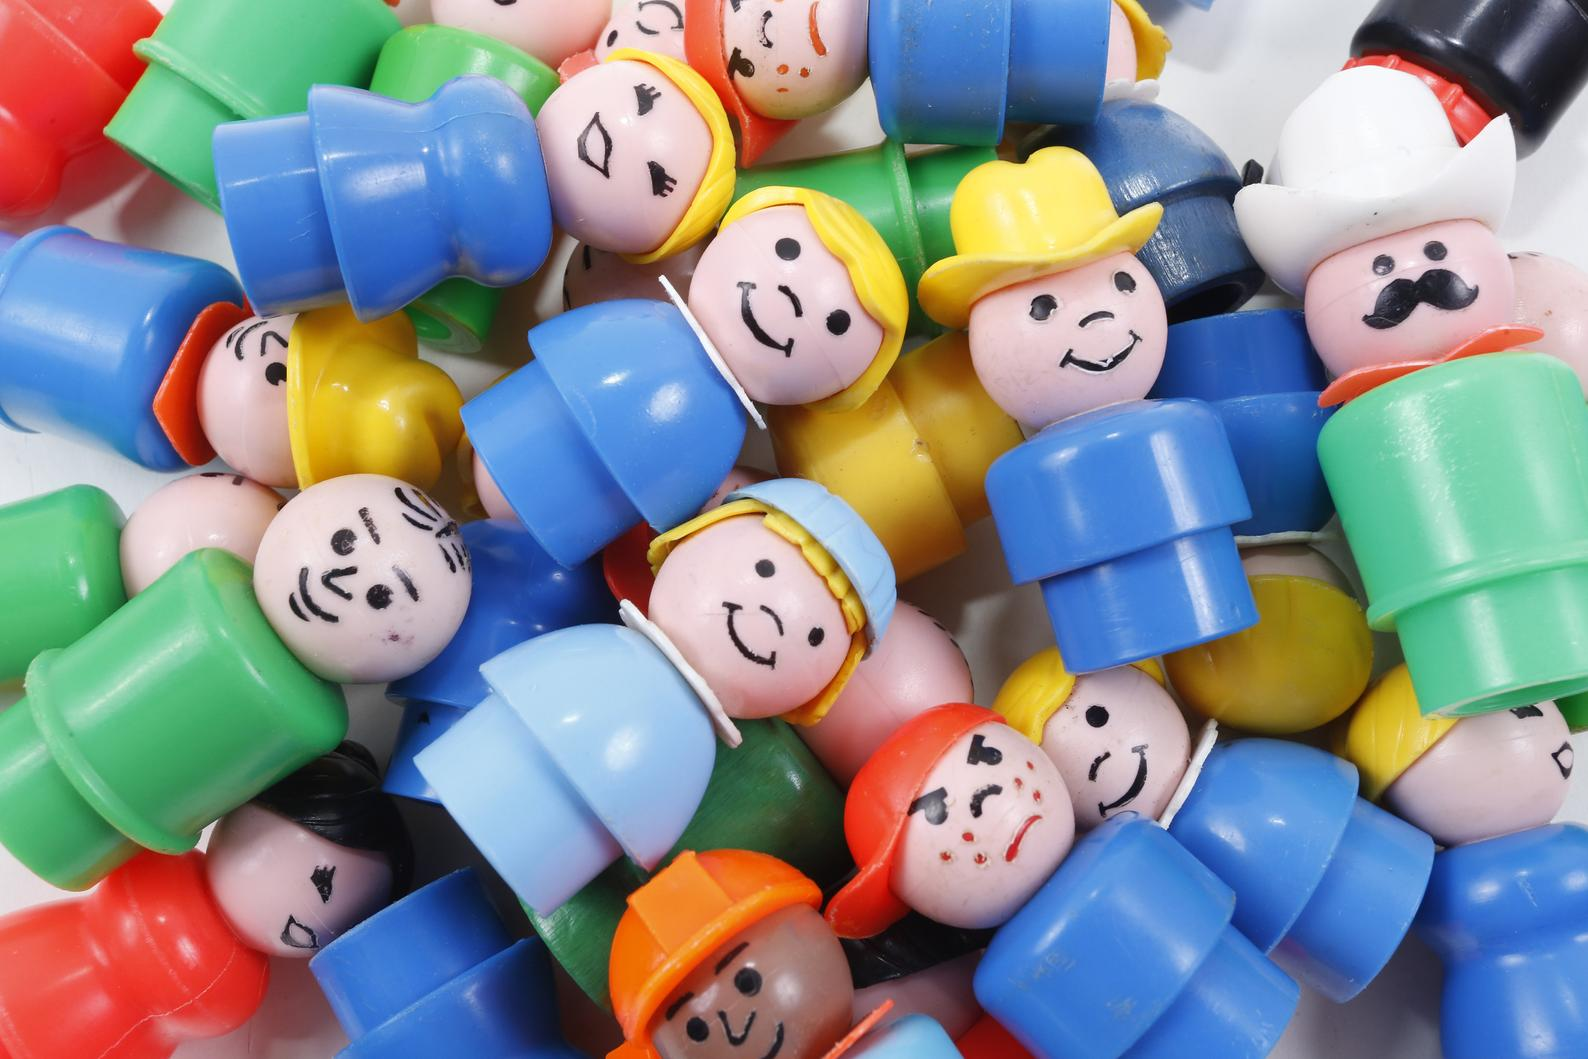 Little People: Did Fisher-Price Ruin My Career? — Midlife Pickle